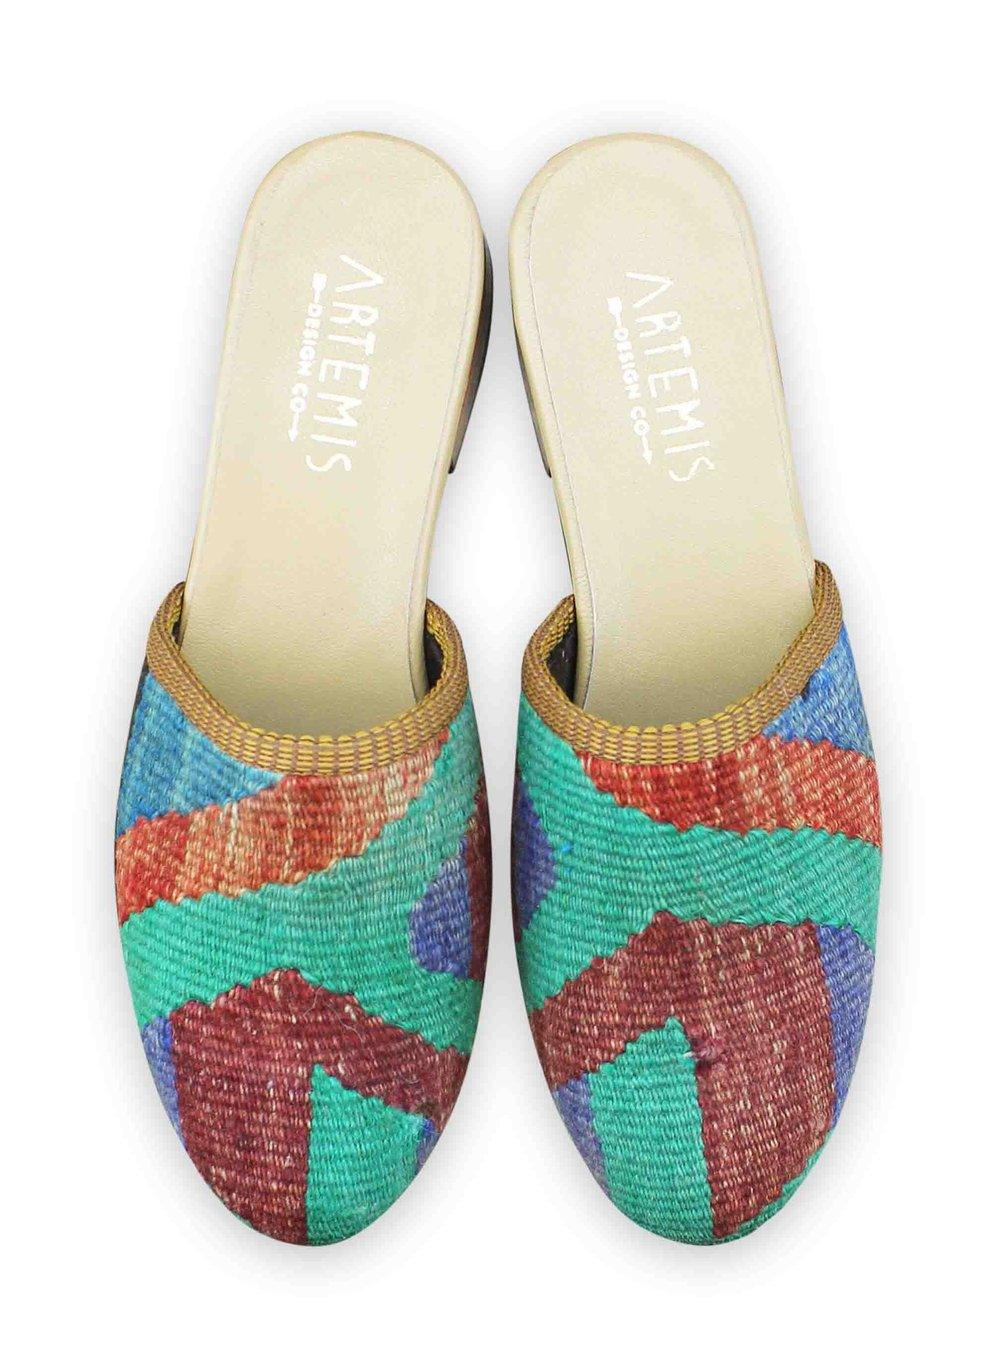 Archived Women's - Size 38 (US 8) Women's Kilim Slide